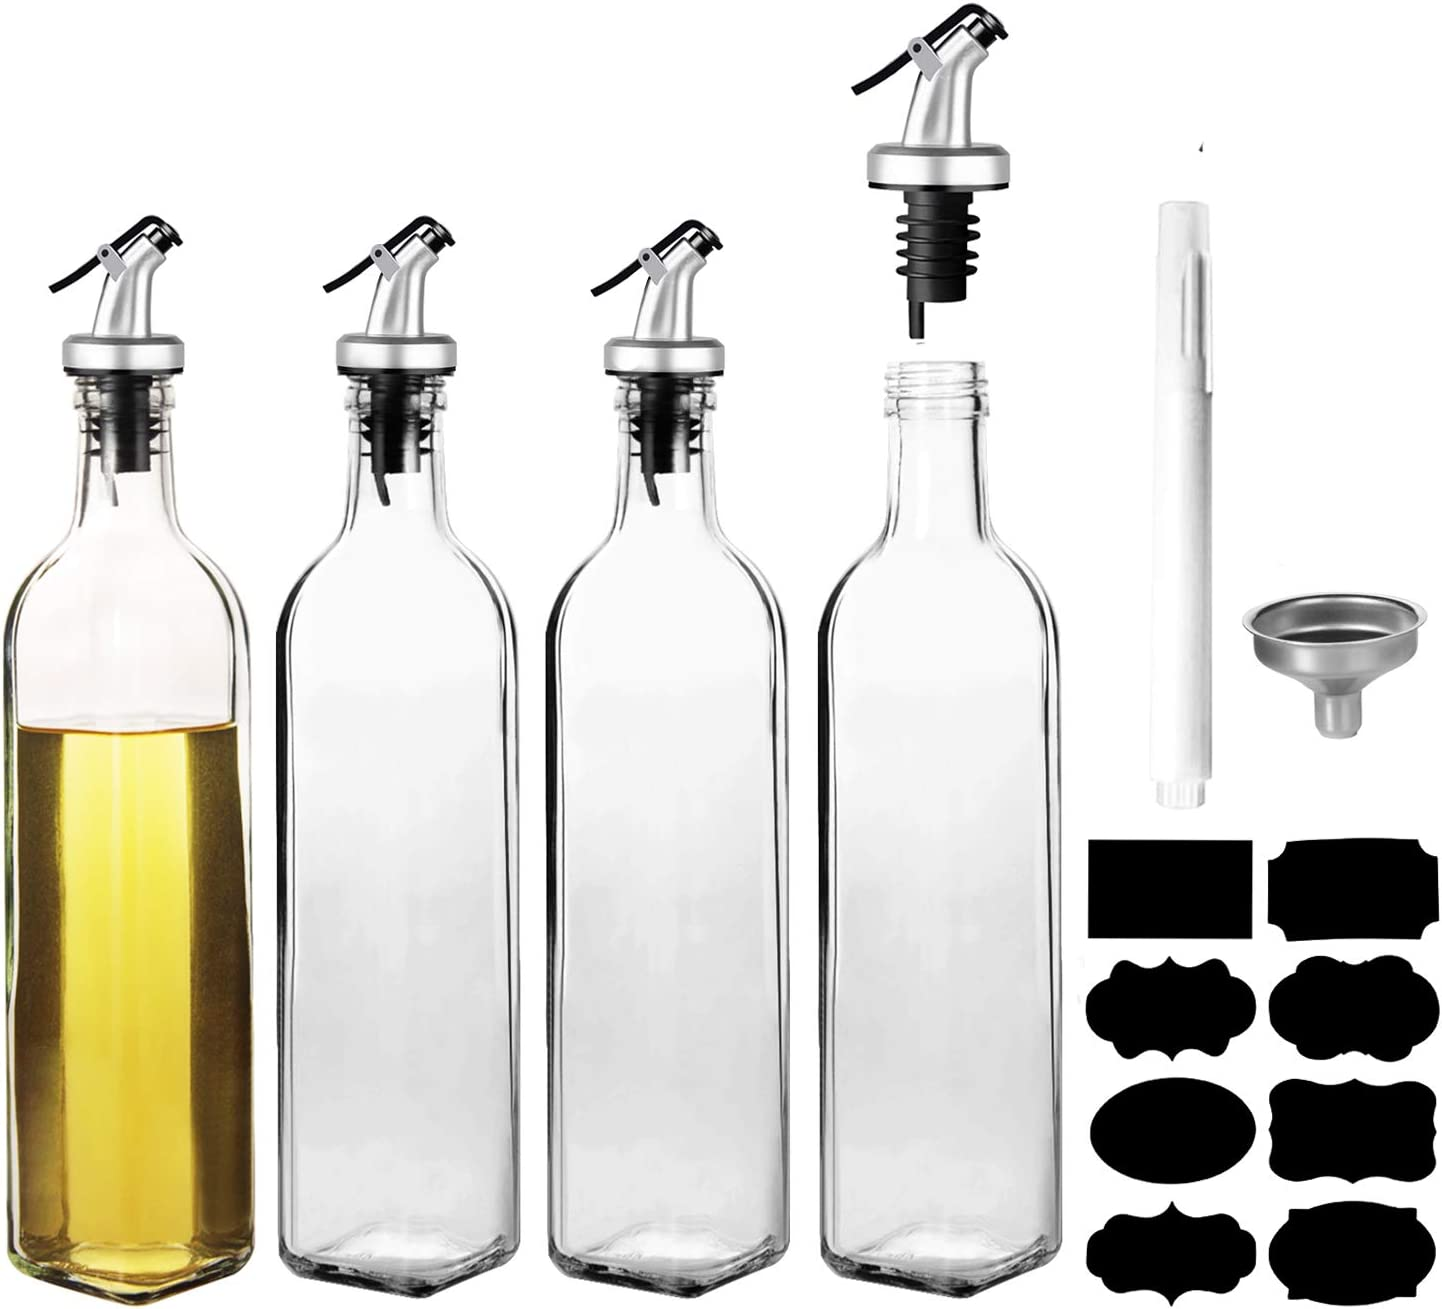 4 Pack Oil Dispenser Bottle , WERTIOO 17 OZ Glass Olive Oil and Vinegar Dispenser Set Oil Container with Funnel & Pen and Tag for Kitchen